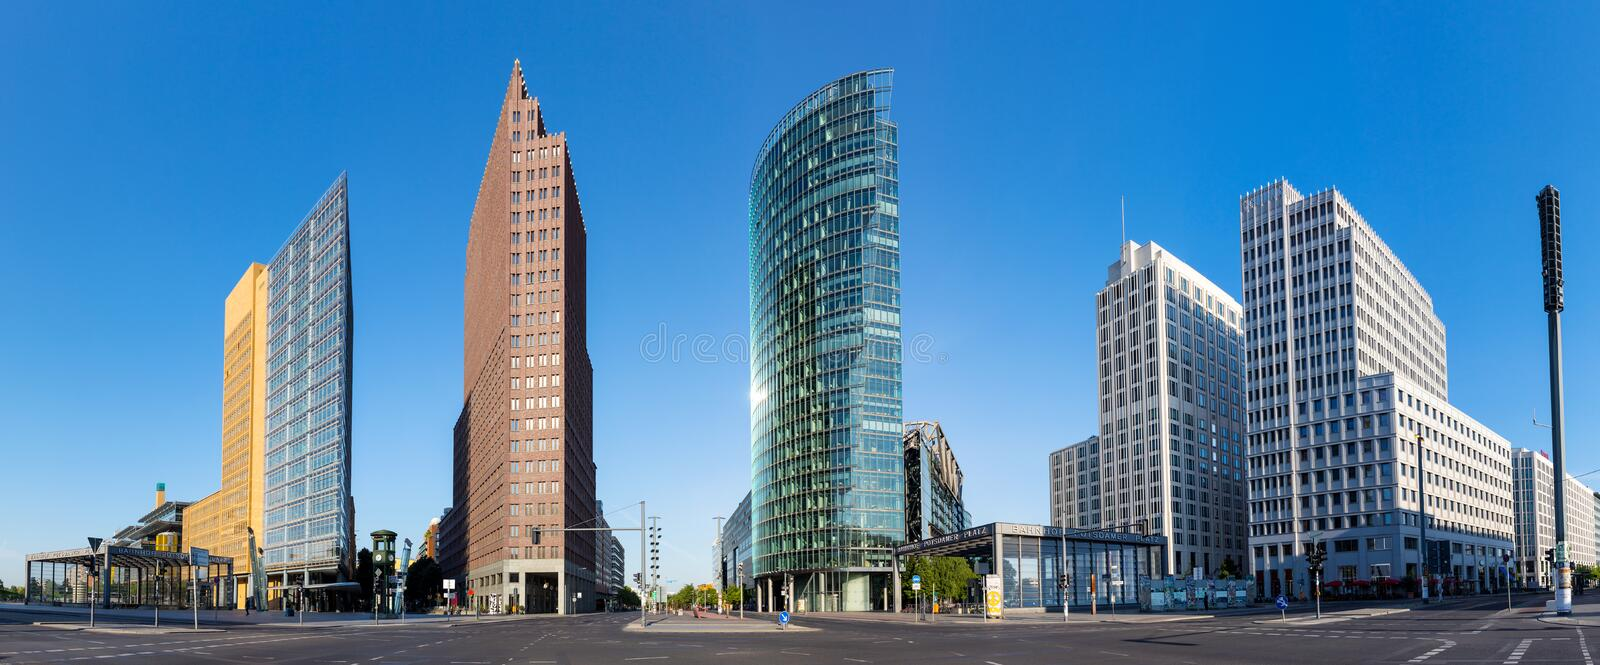 Panoramic view on Potsdamer Platz in Berlin royalty free stock image